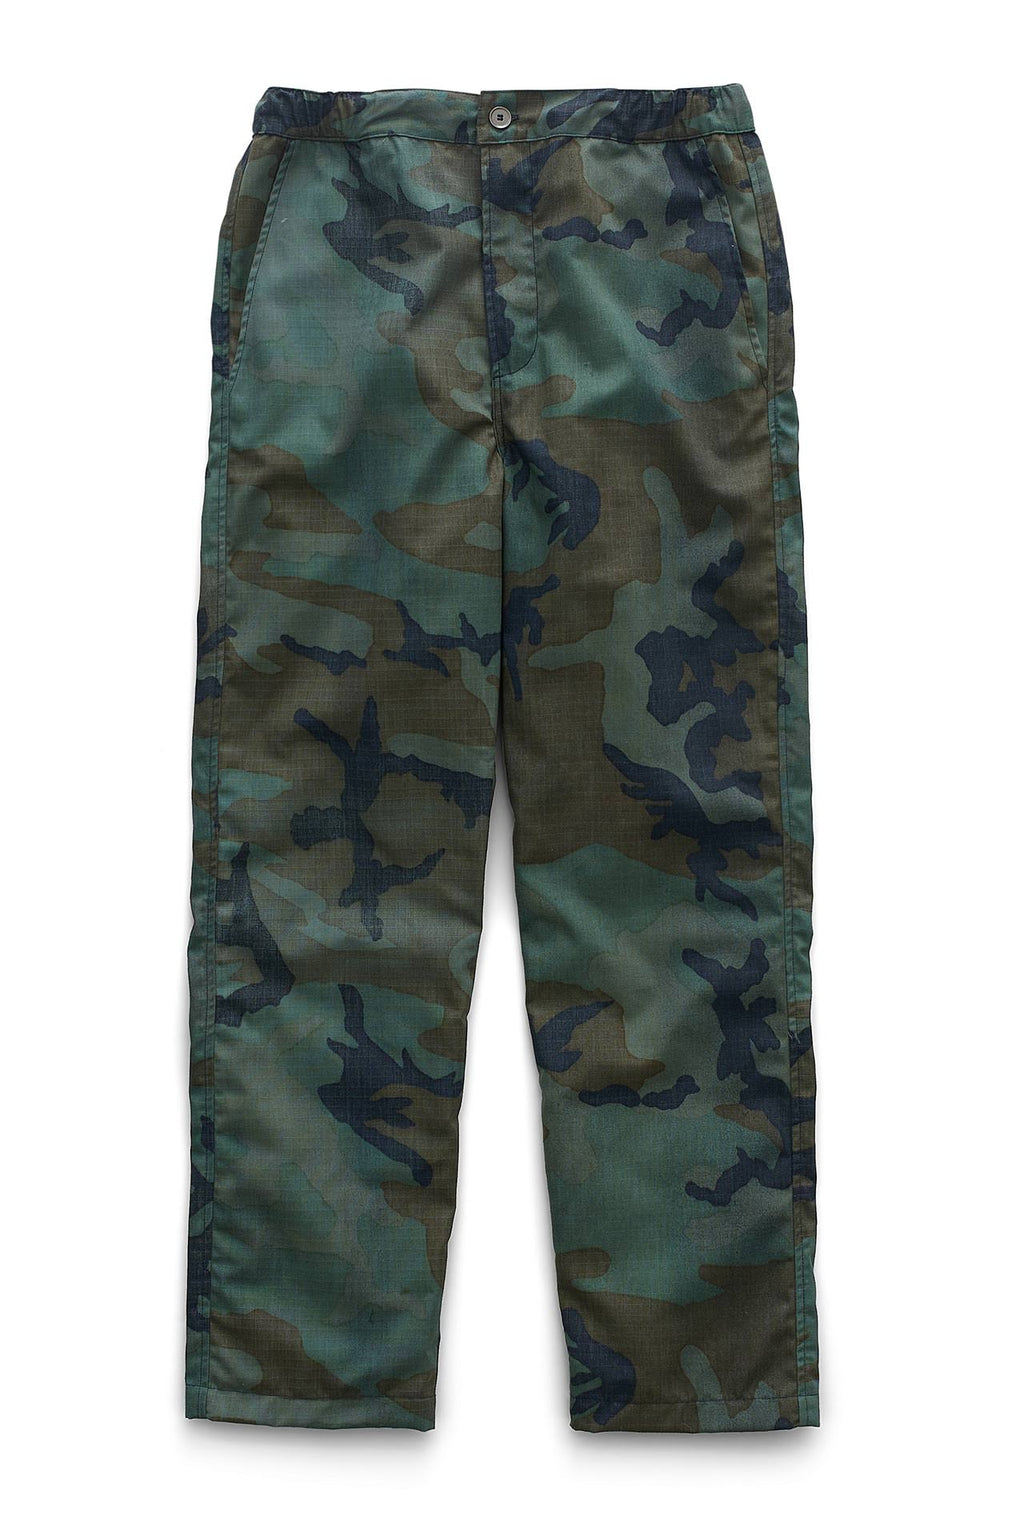 The Rogue Pant in Reverse Camo